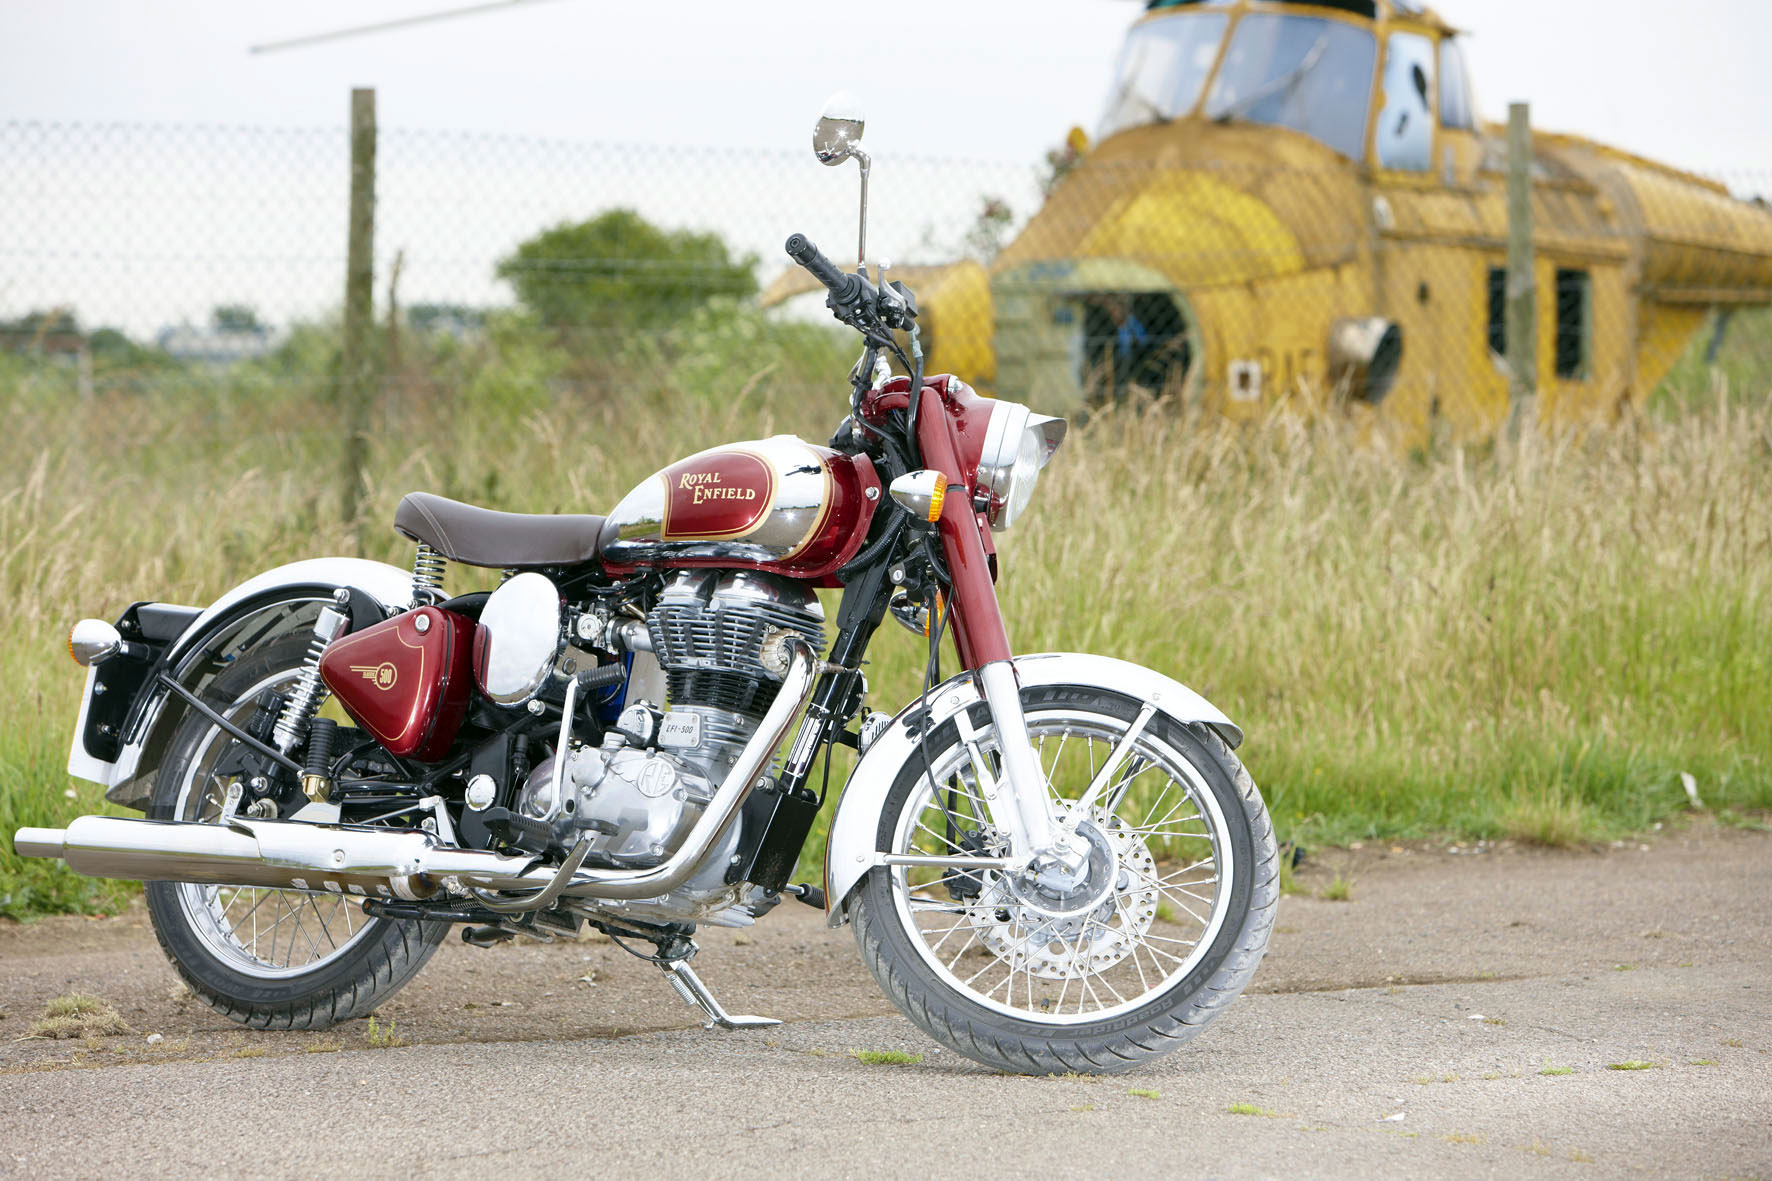 Royal Enfield Bullet 500 Trial Trail images #170401